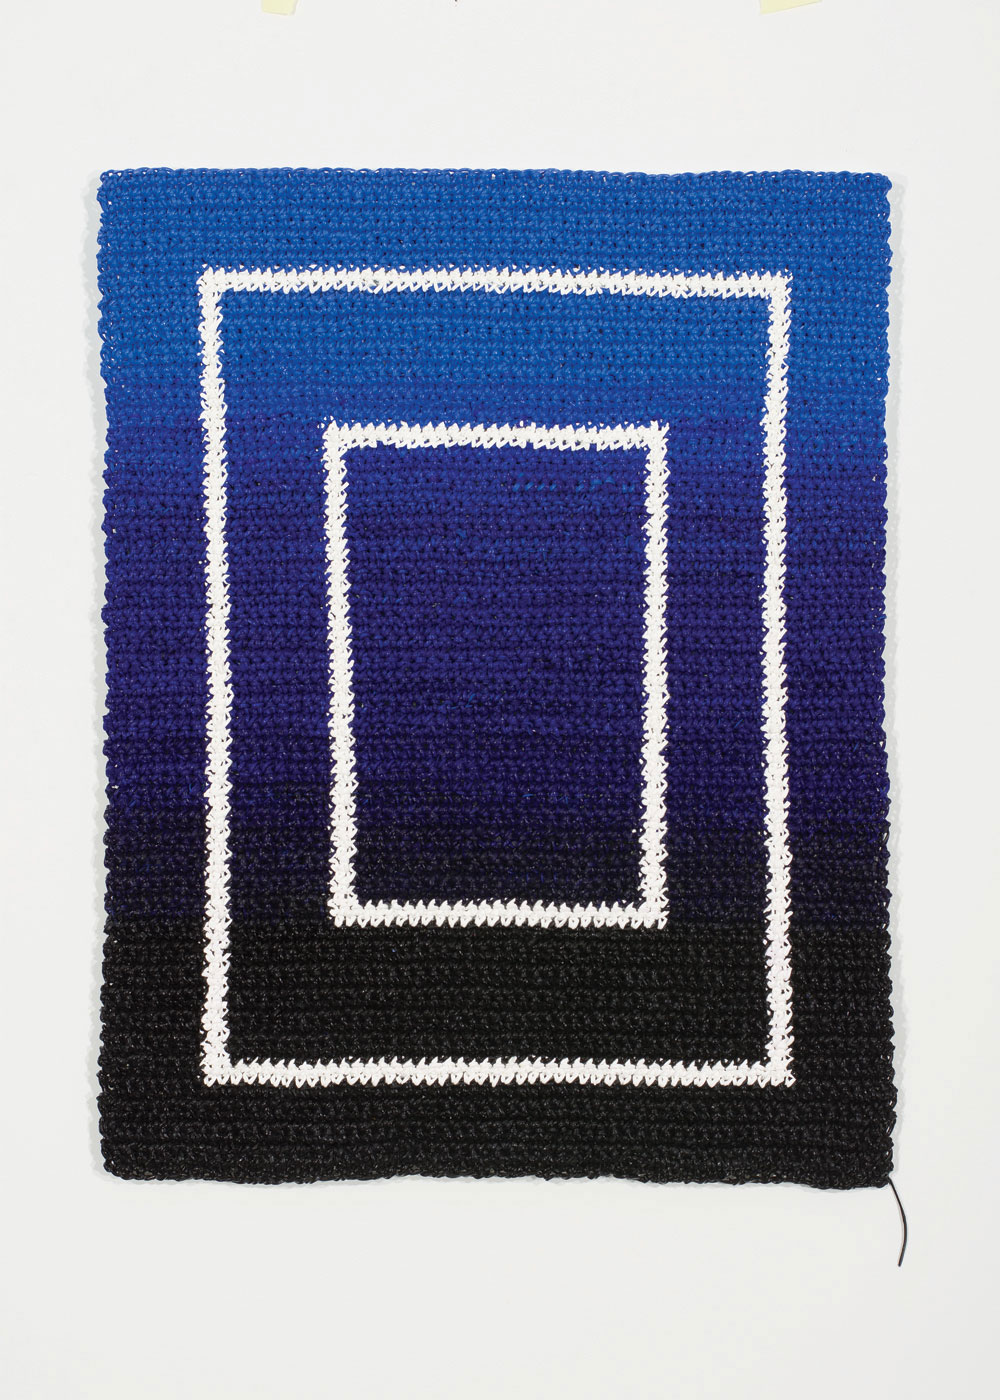 Angela Teng, Jump Start, 2016. Crocheted acrylic paint on auminum panel, 24 x 18 in.